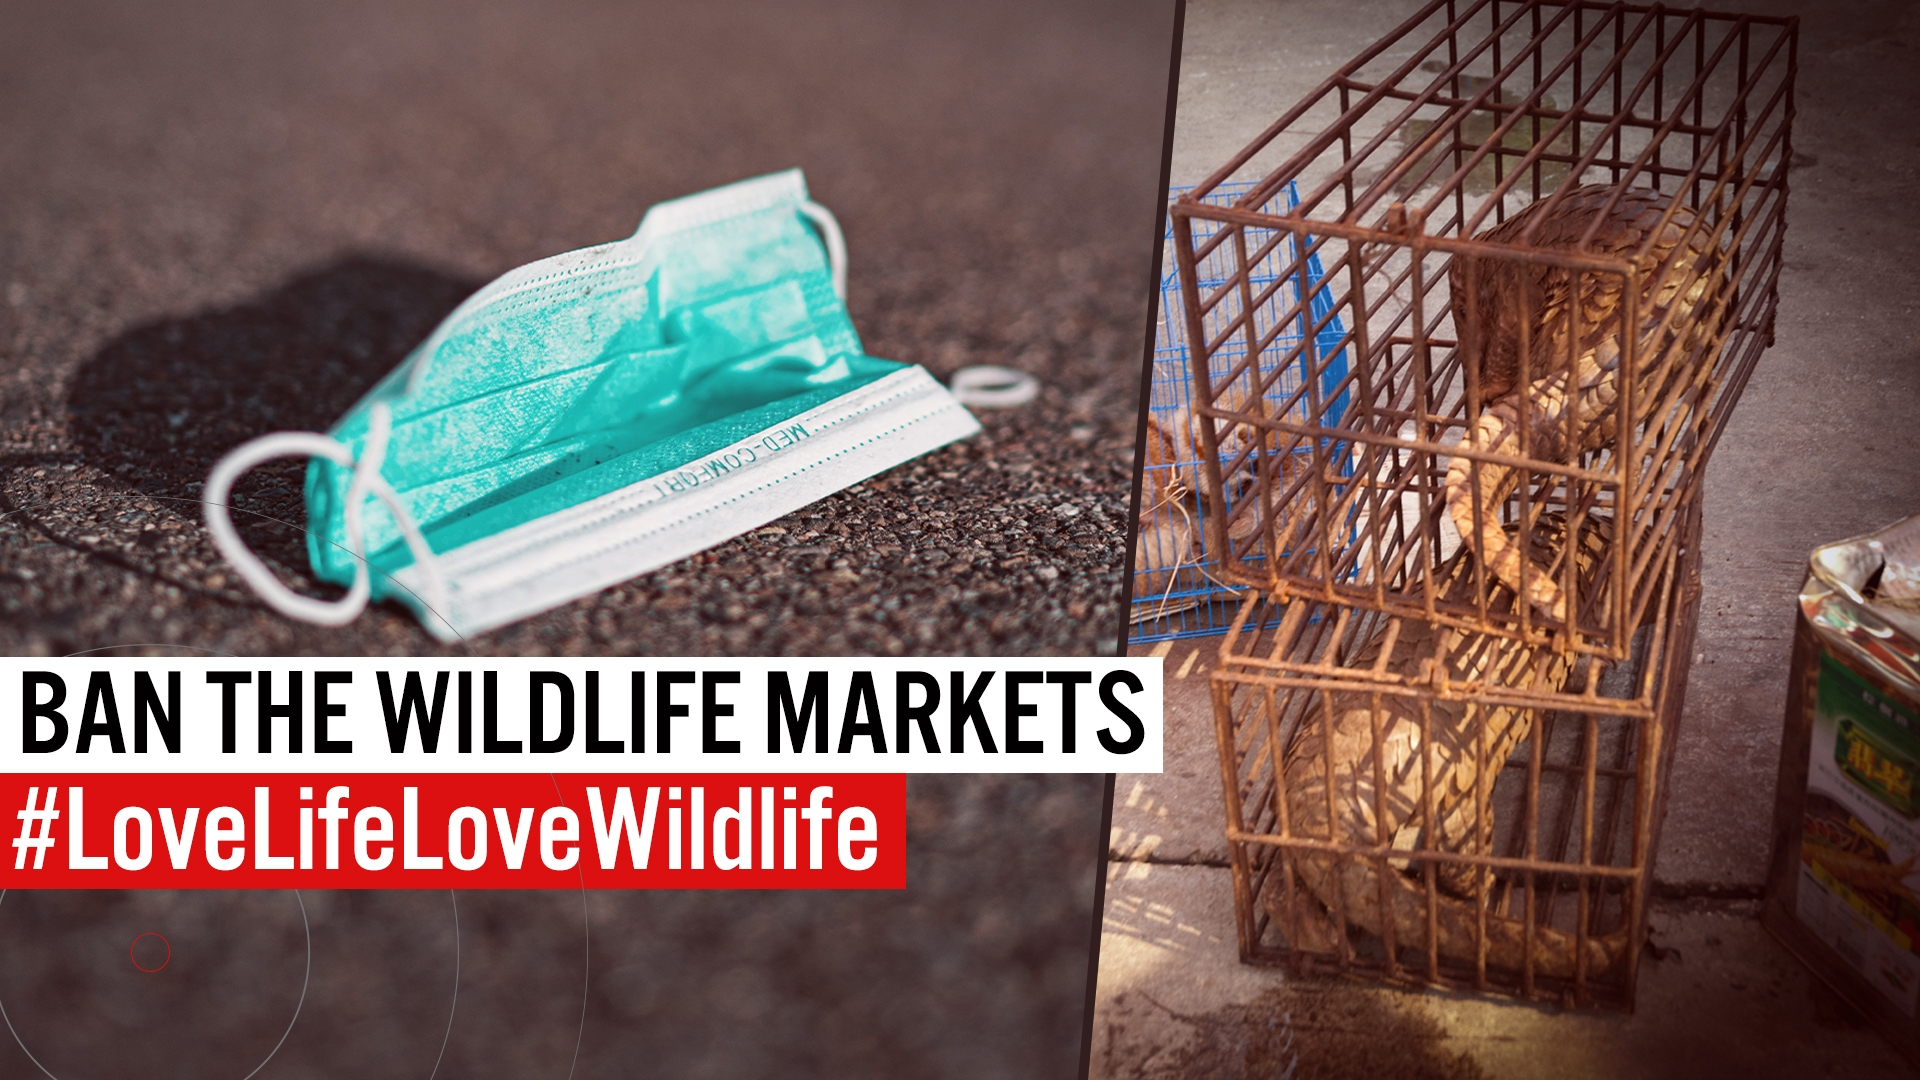 Ban Commercial wildlife markets